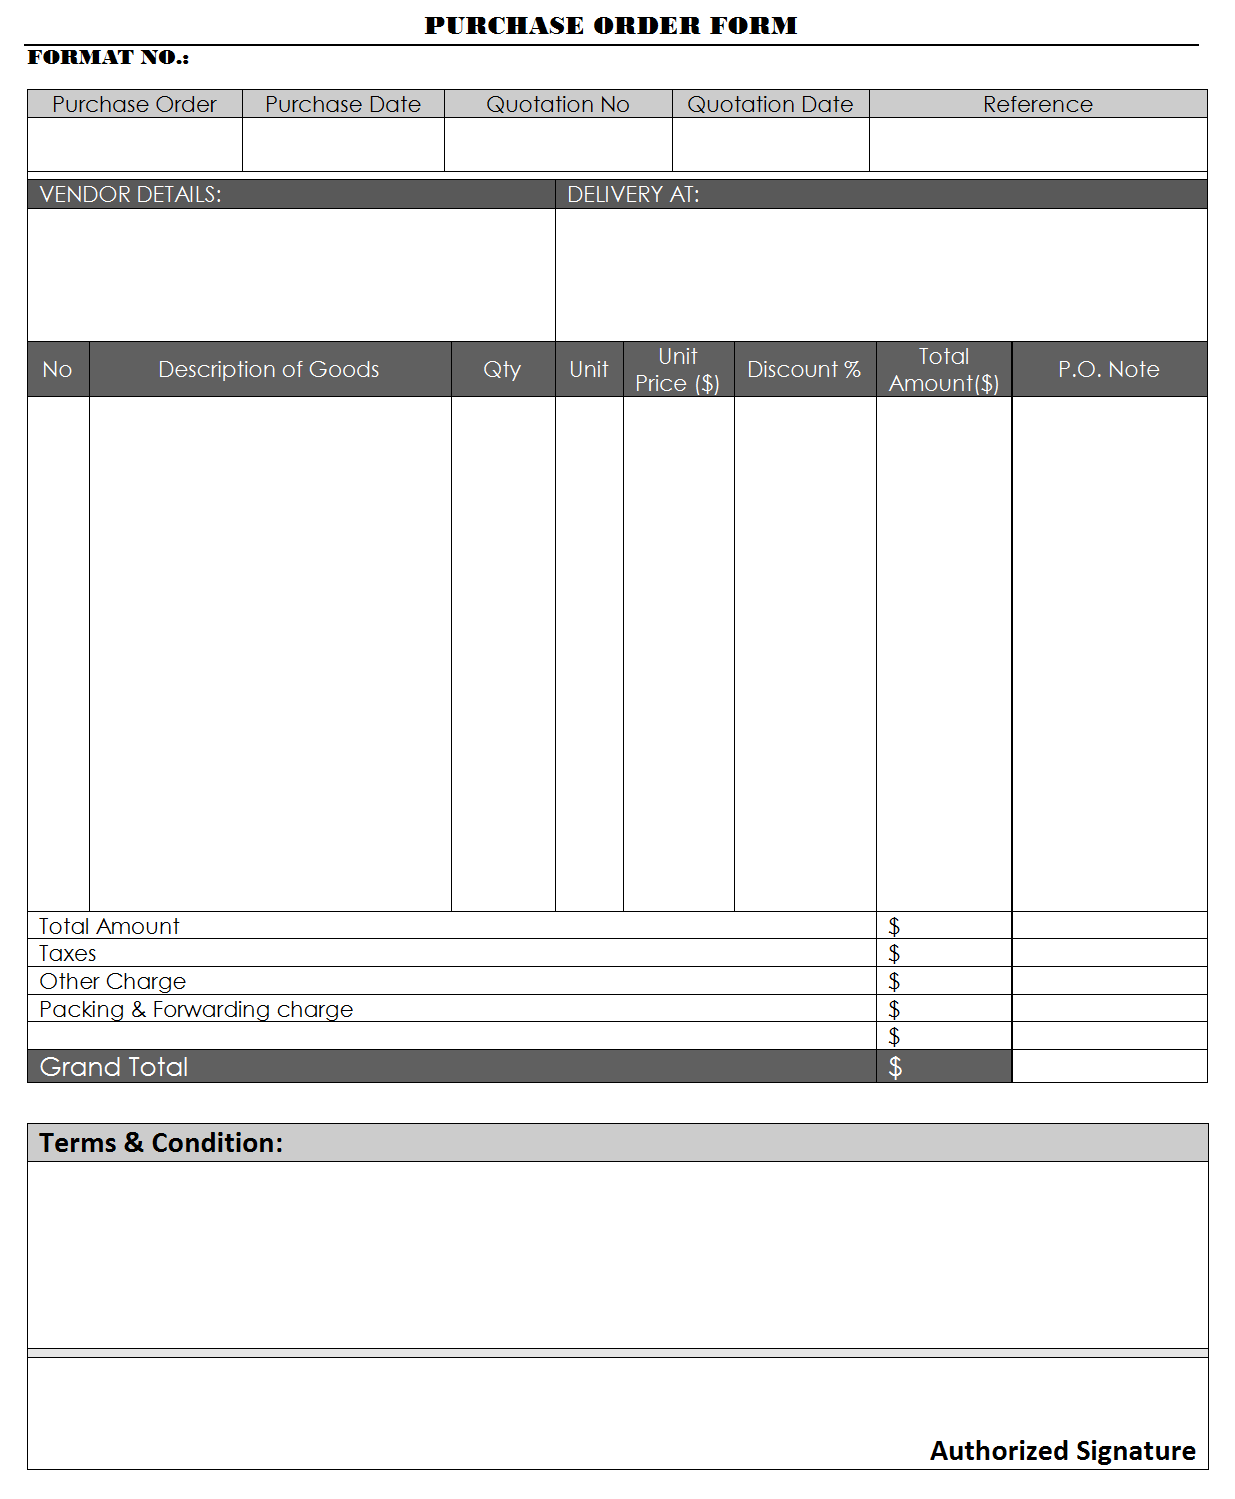 Purchase Order Form Format Format PG 1 ...  Purchase Order Format Free Download